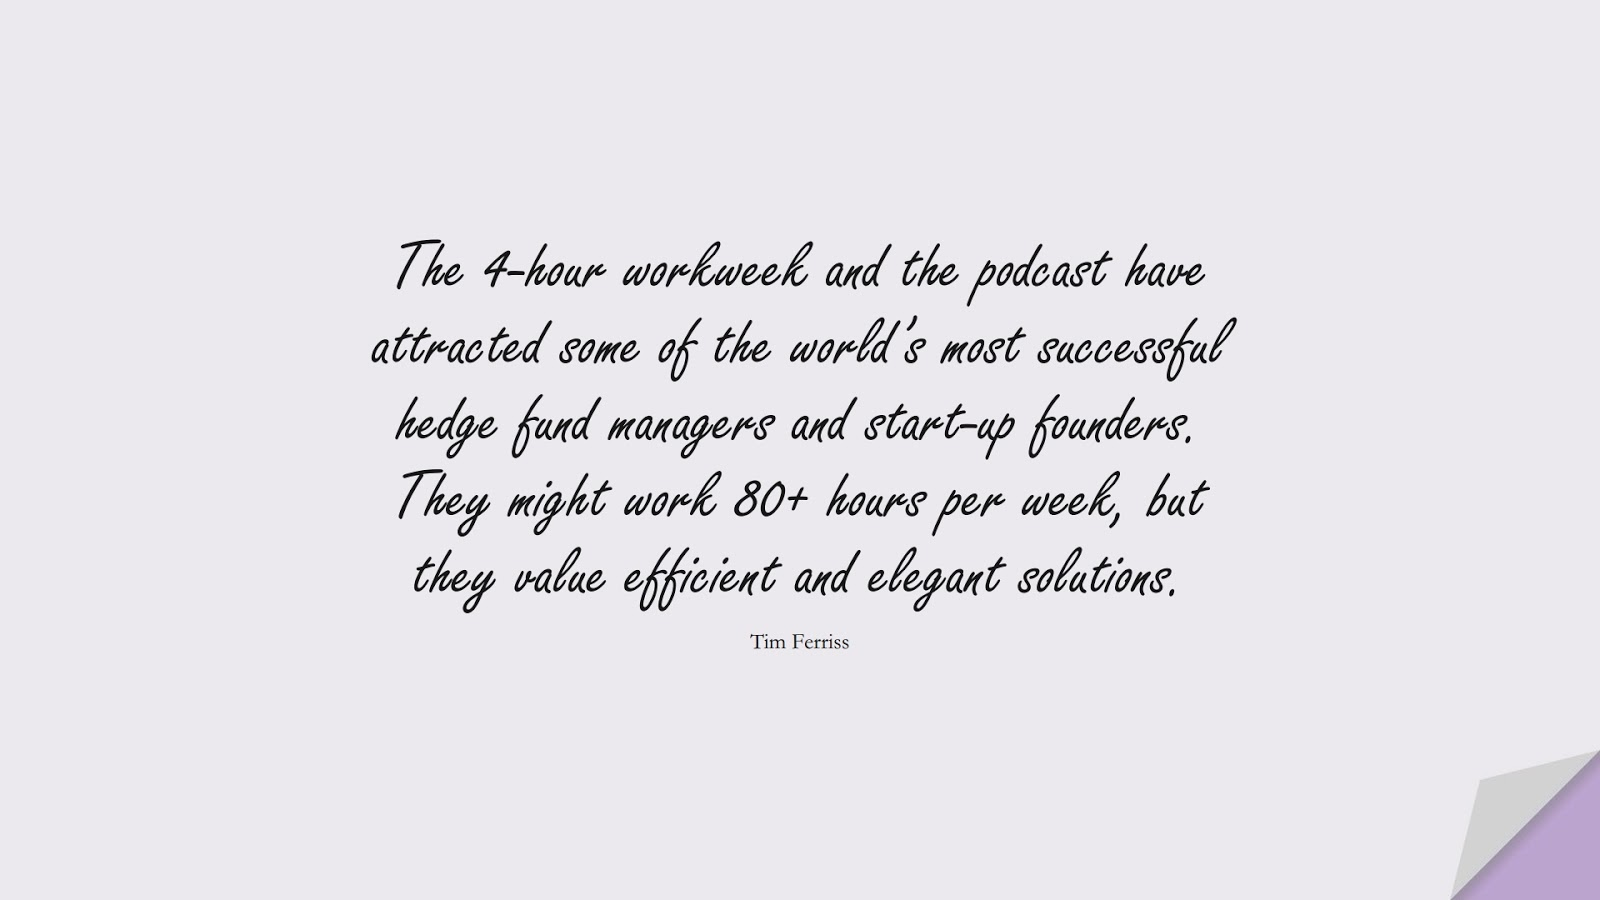 The 4-hour workweek and the podcast have attracted some of the world's most successful hedge fund managers and start-up founders. They might work 80+ hours per week, but they value efficient and elegant solutions. (Tim Ferriss);  #TimFerrissQuotes